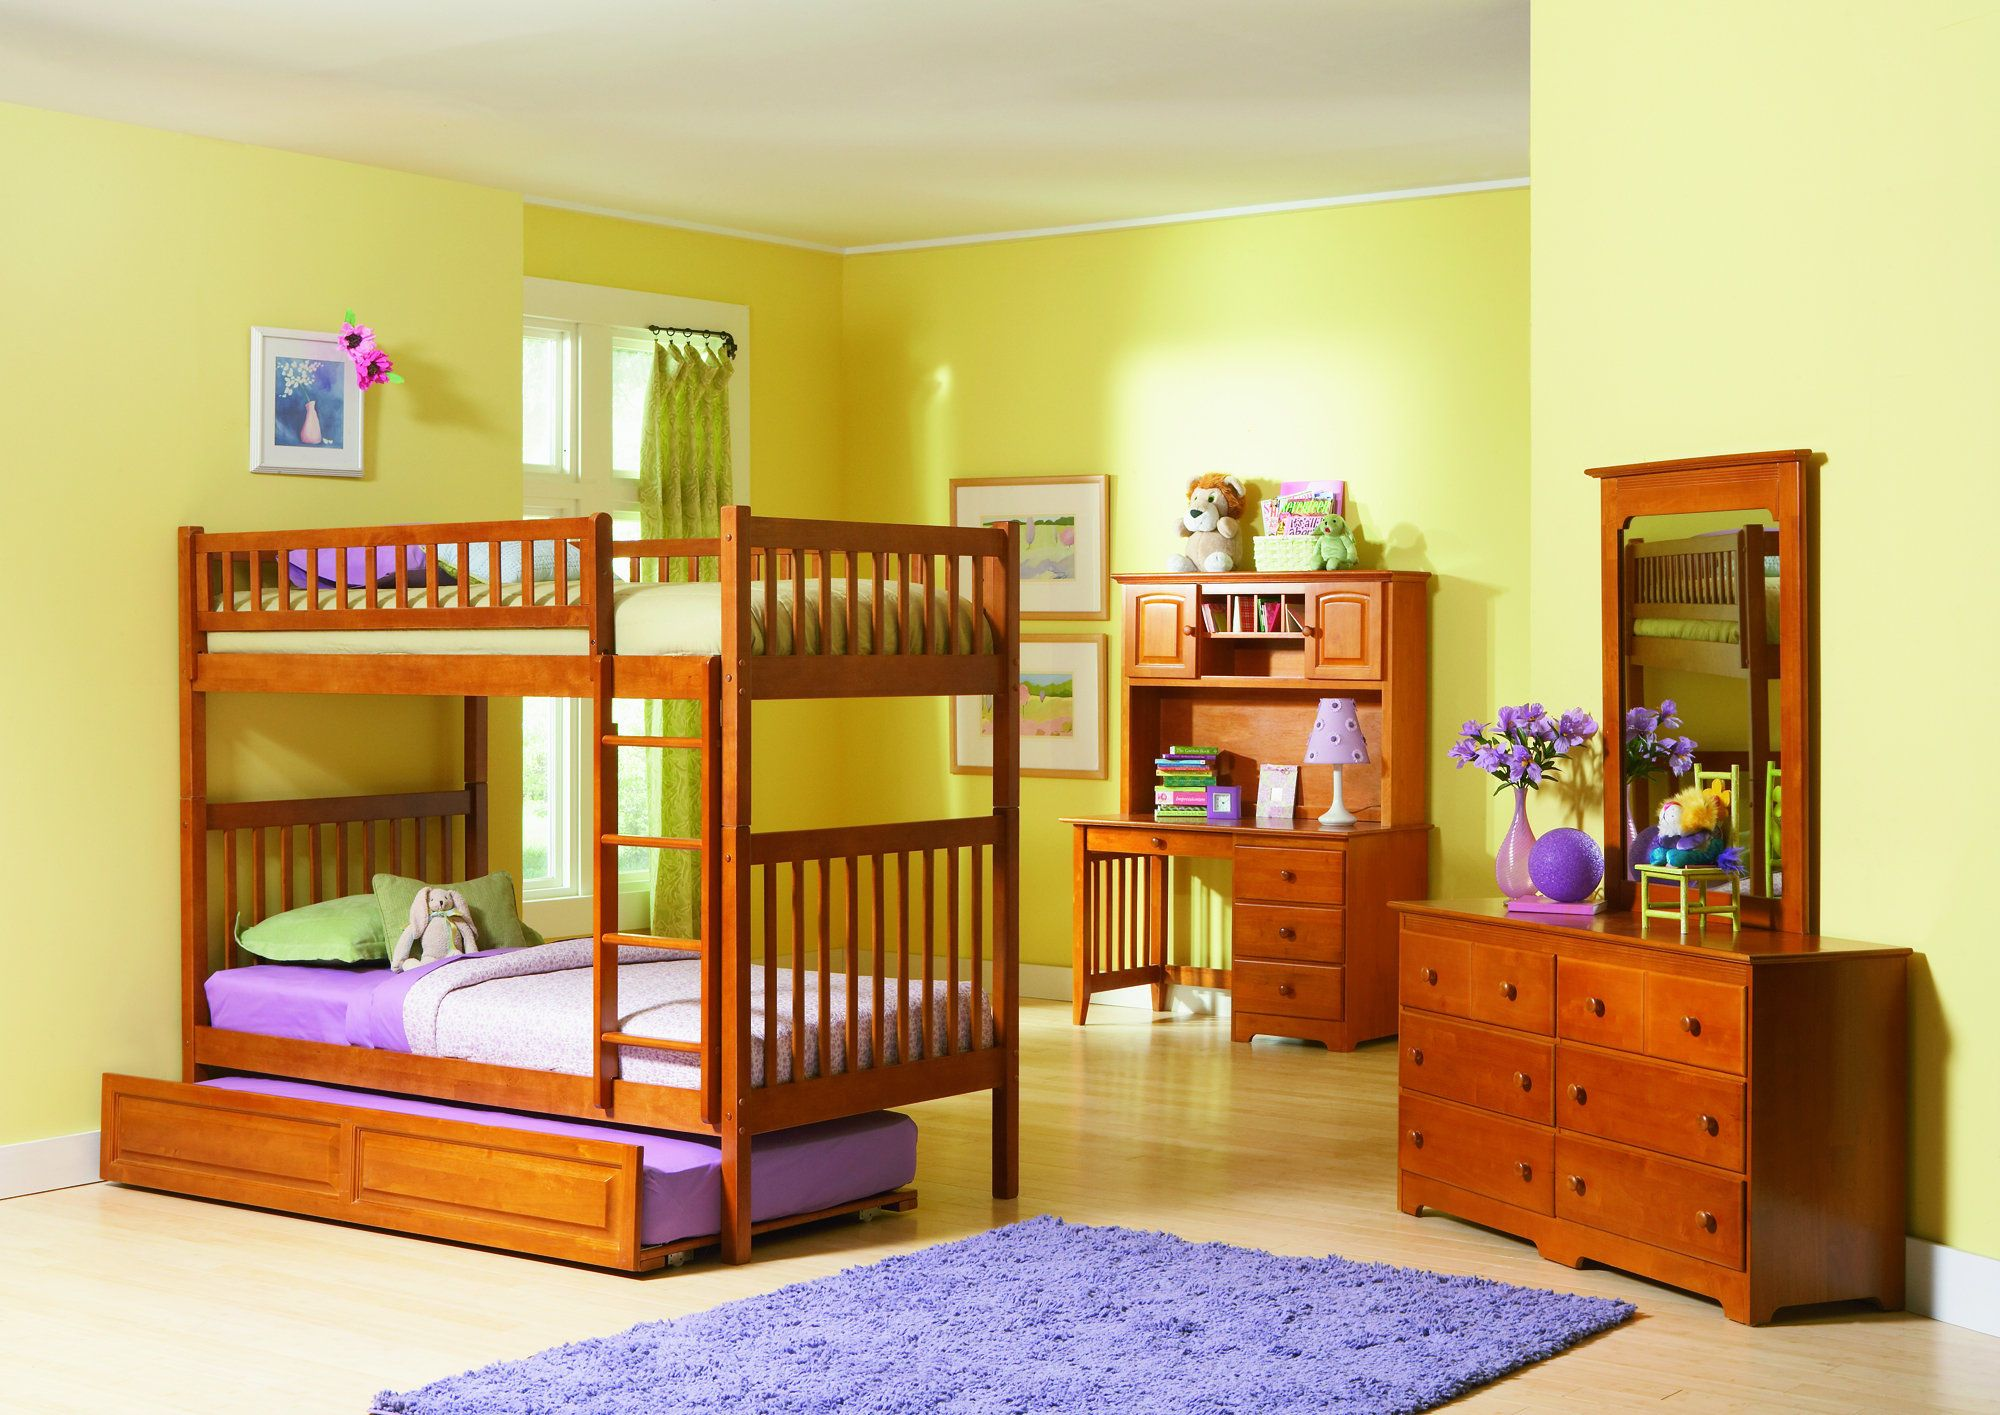 Children bedroom furniture for your child - goodworksfurniture